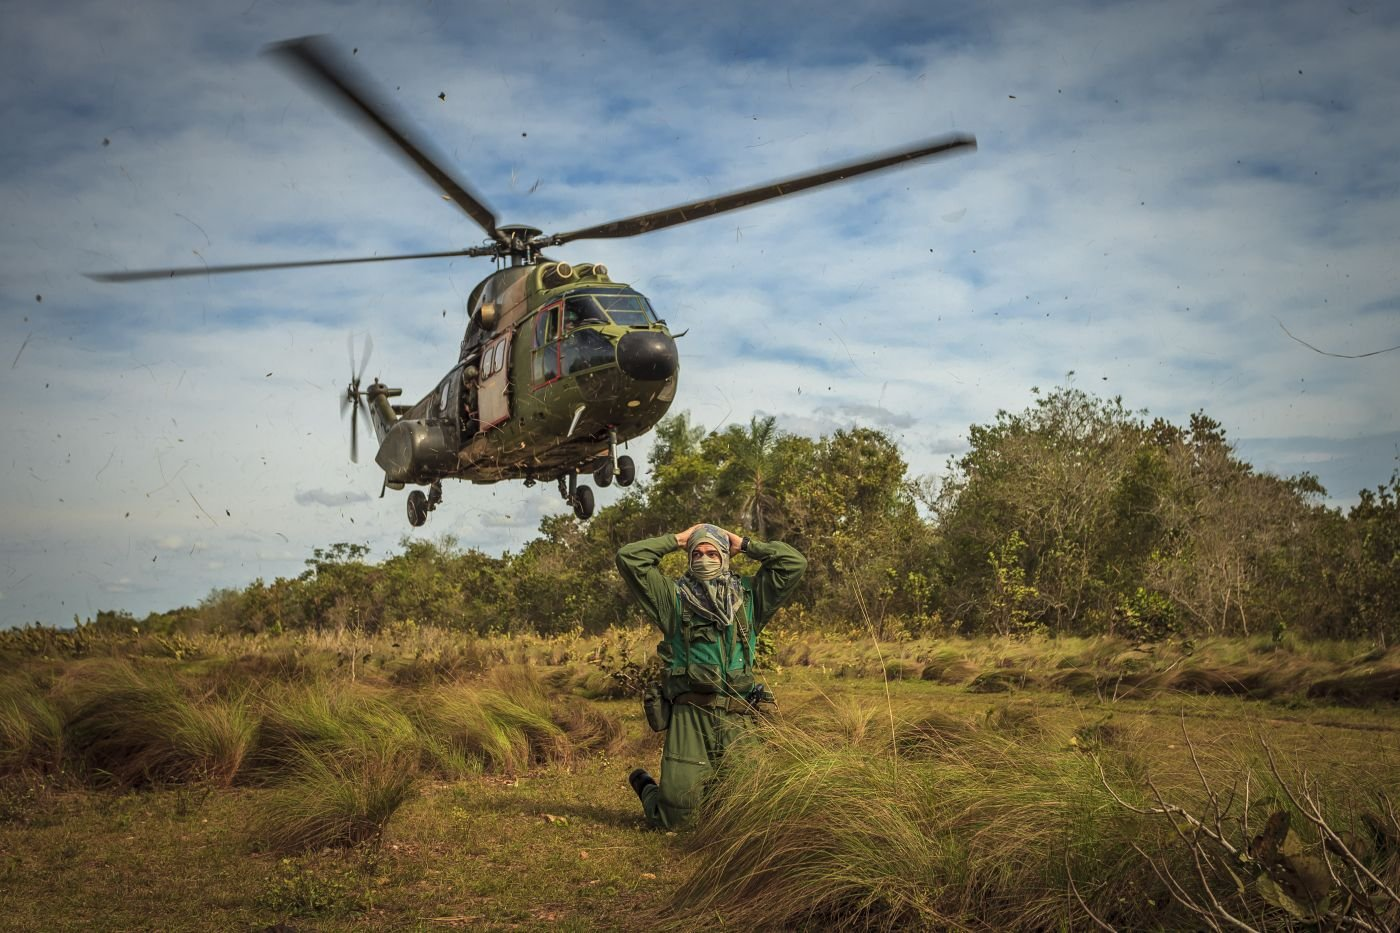 Brazil's Air Force Conducts Combat Rescue Training and Air Show